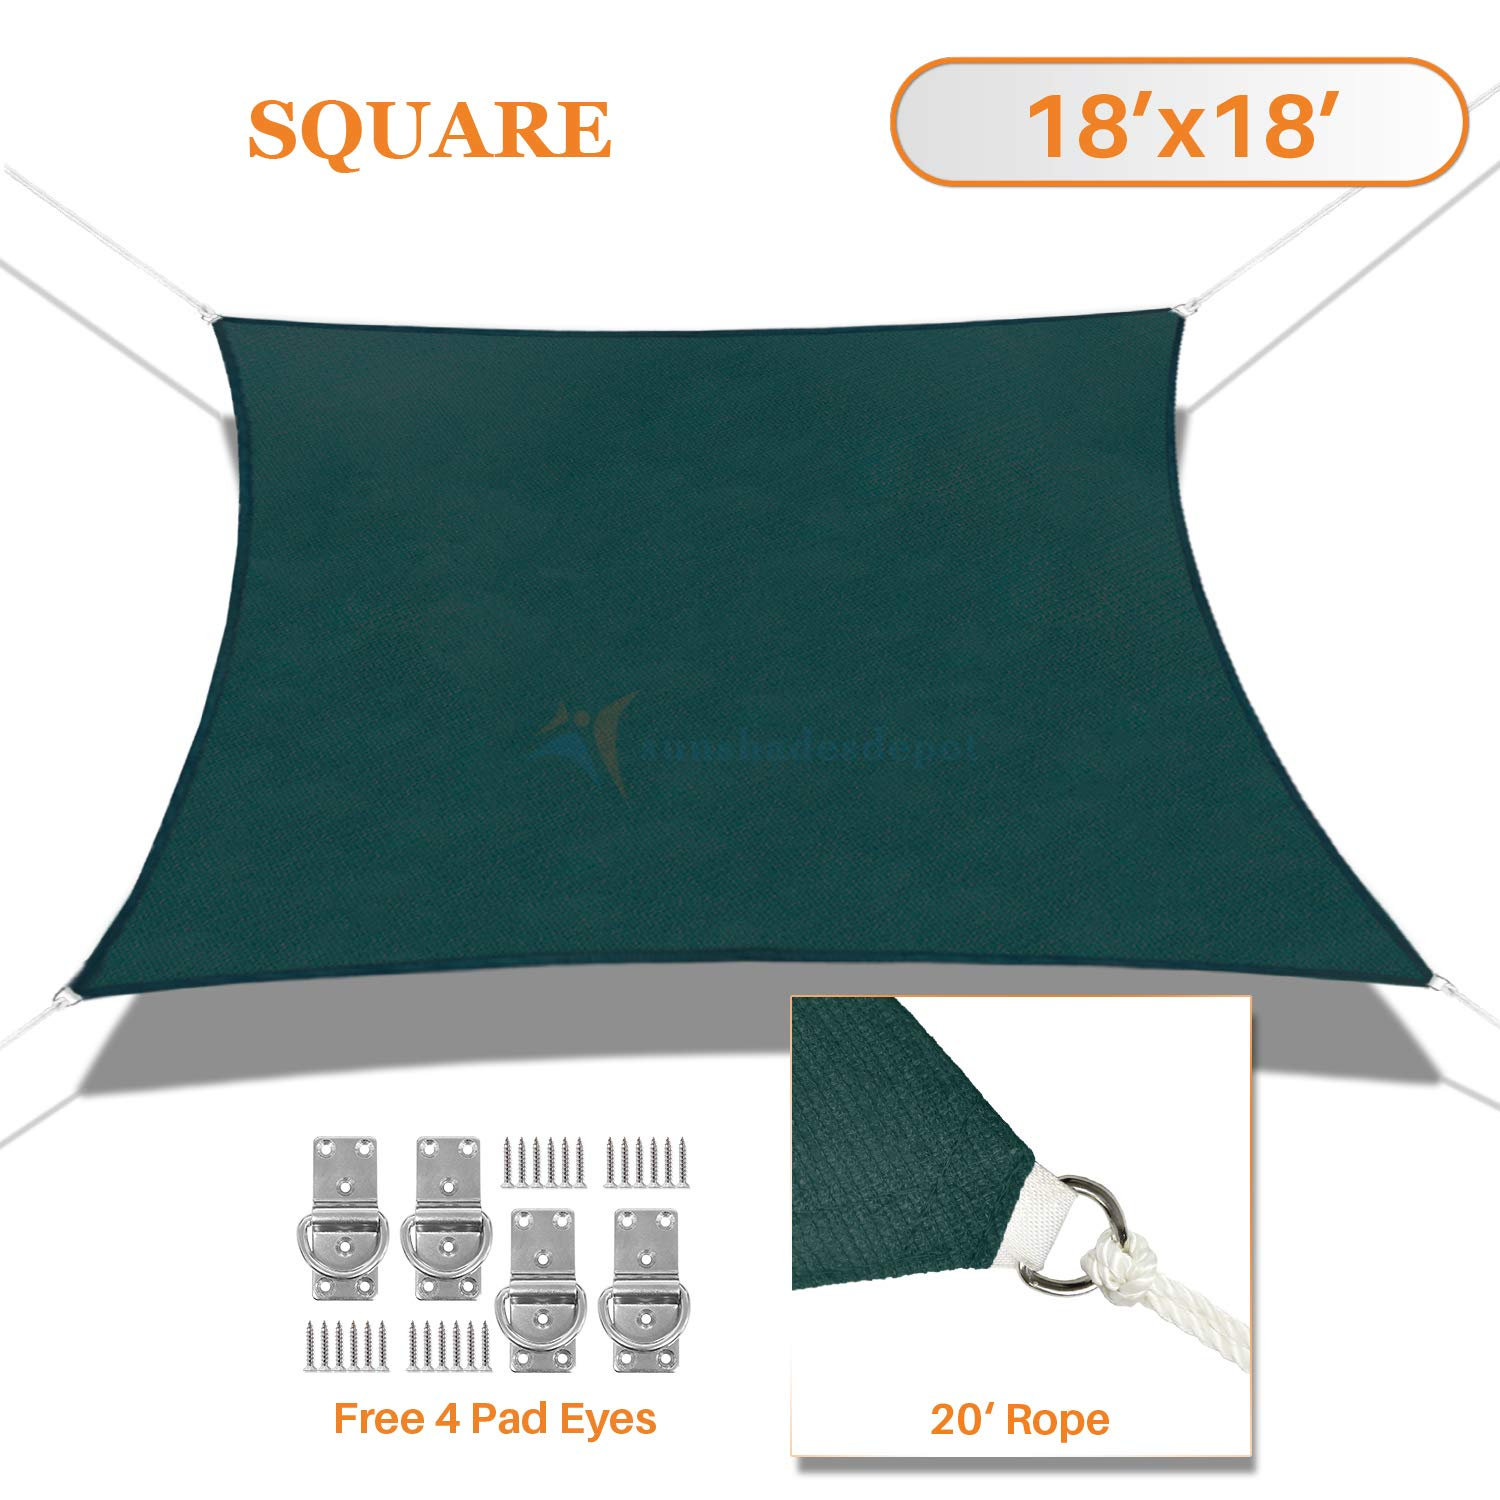 Sunshades Depot 18' x 18' Dark Green Sun Shade Sail, Rectangle Permeable Canopy CustomSize Available Commercial Standard 180 GSM HDPE